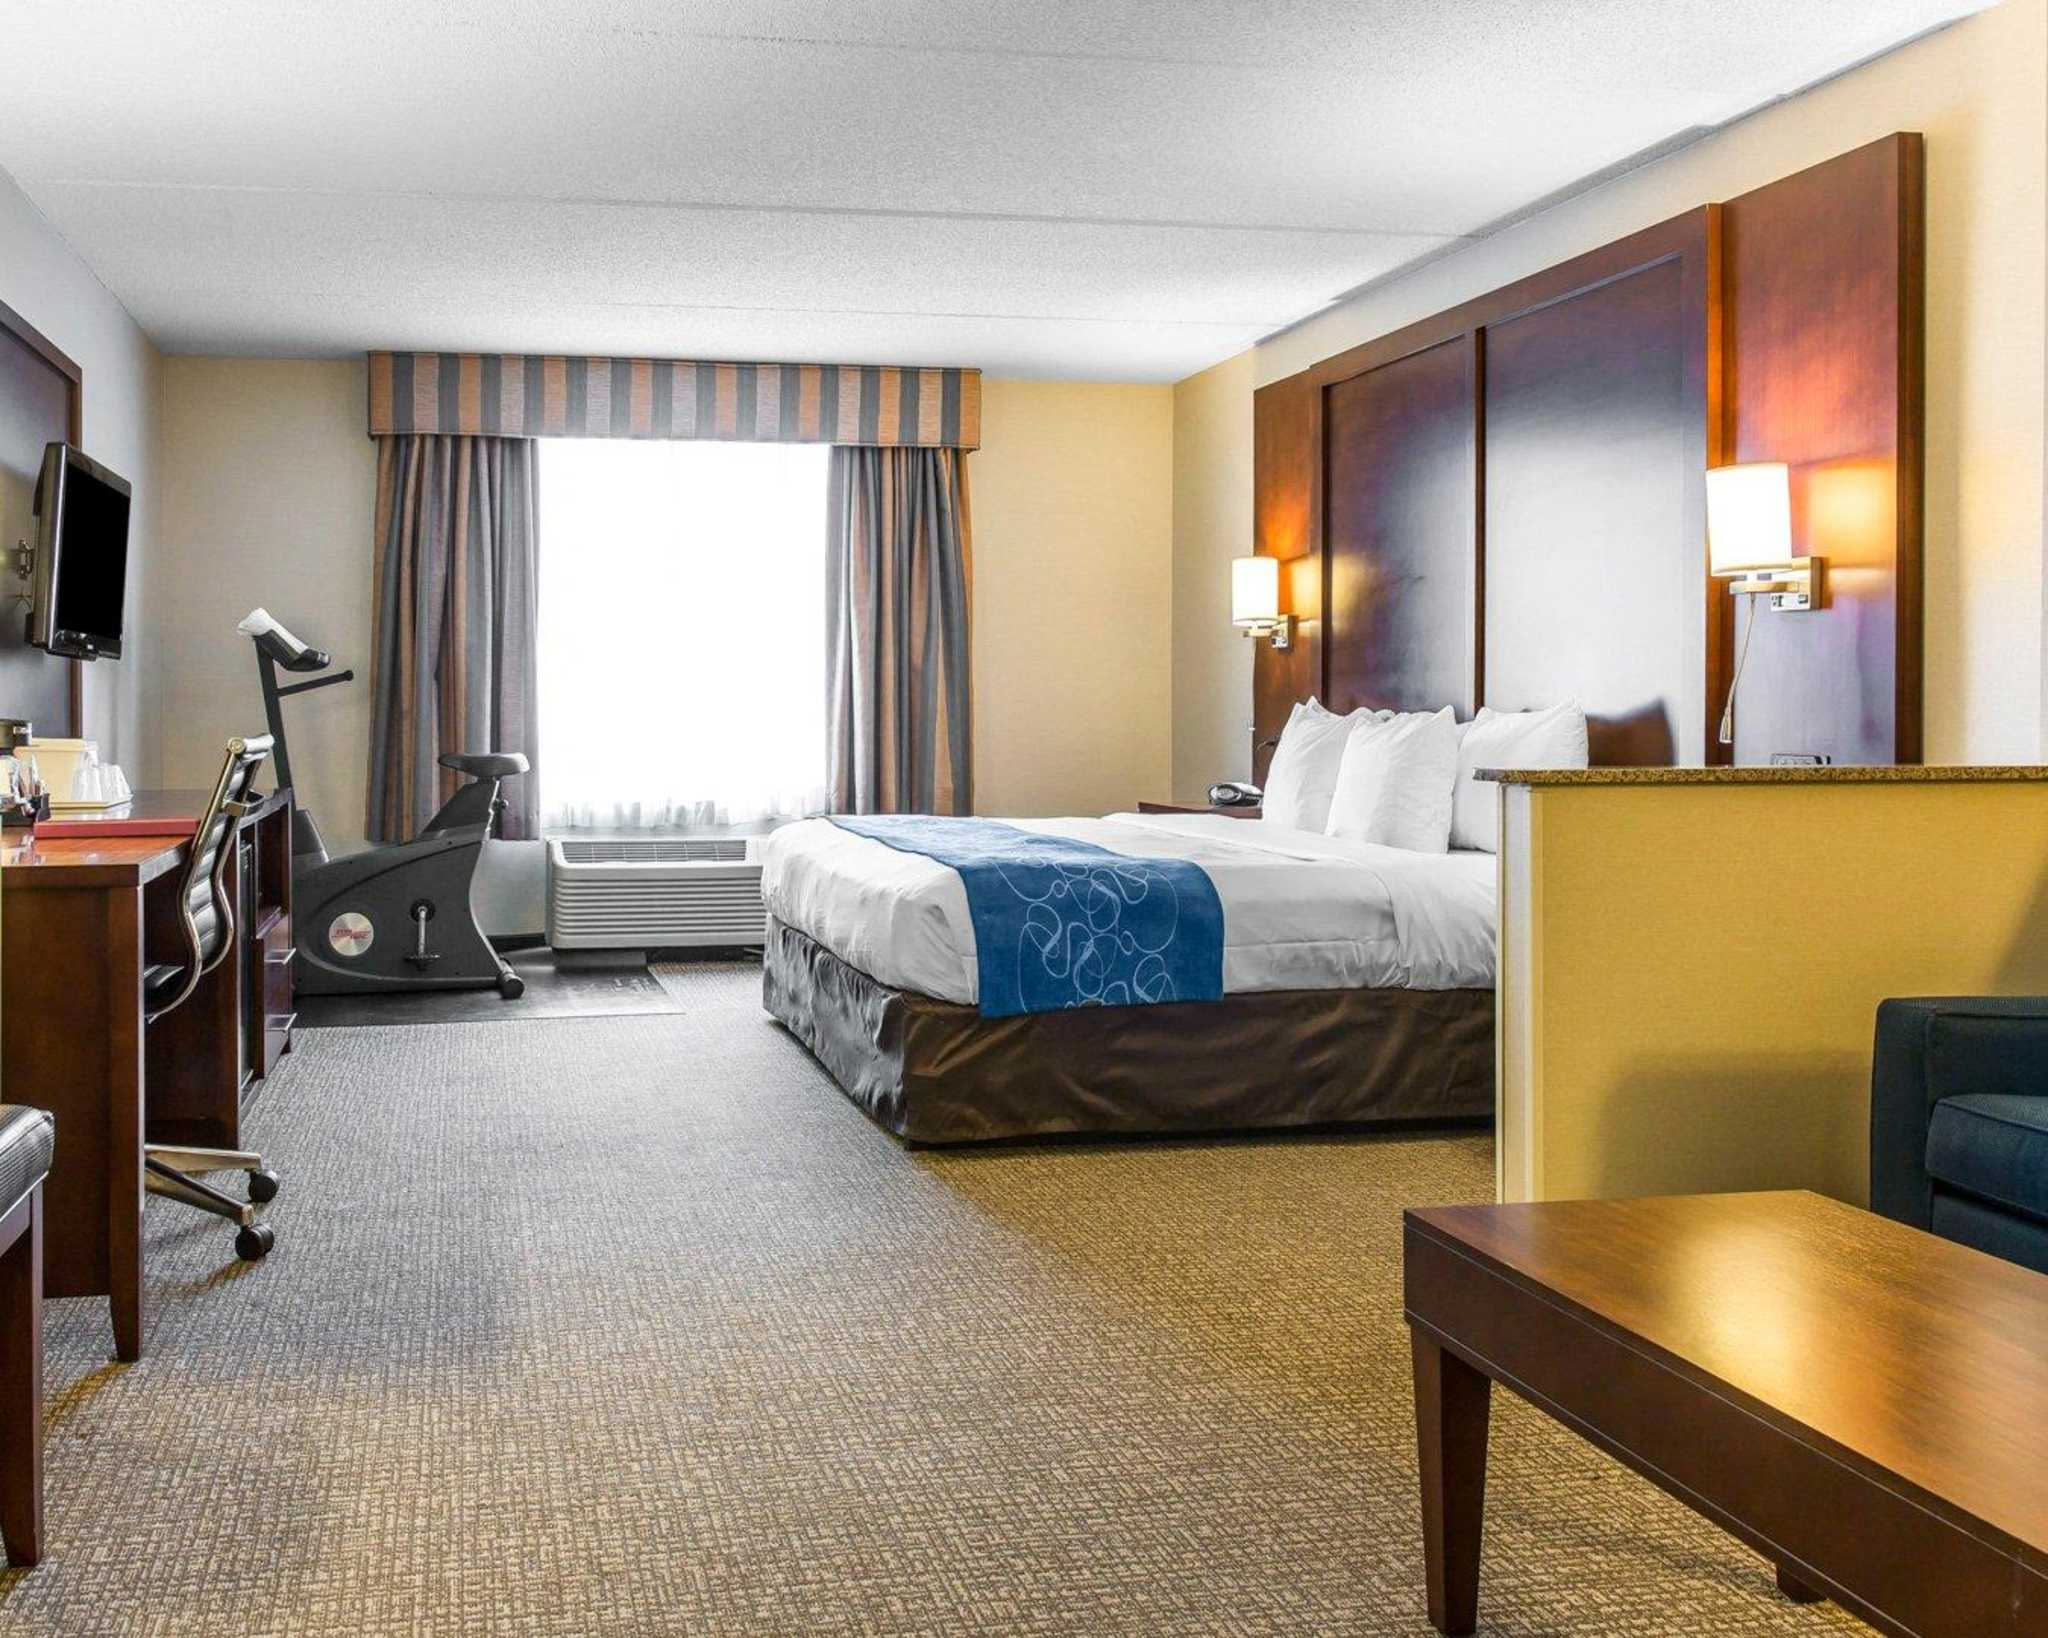 Hotels In Virginia With Hot Tub In Room